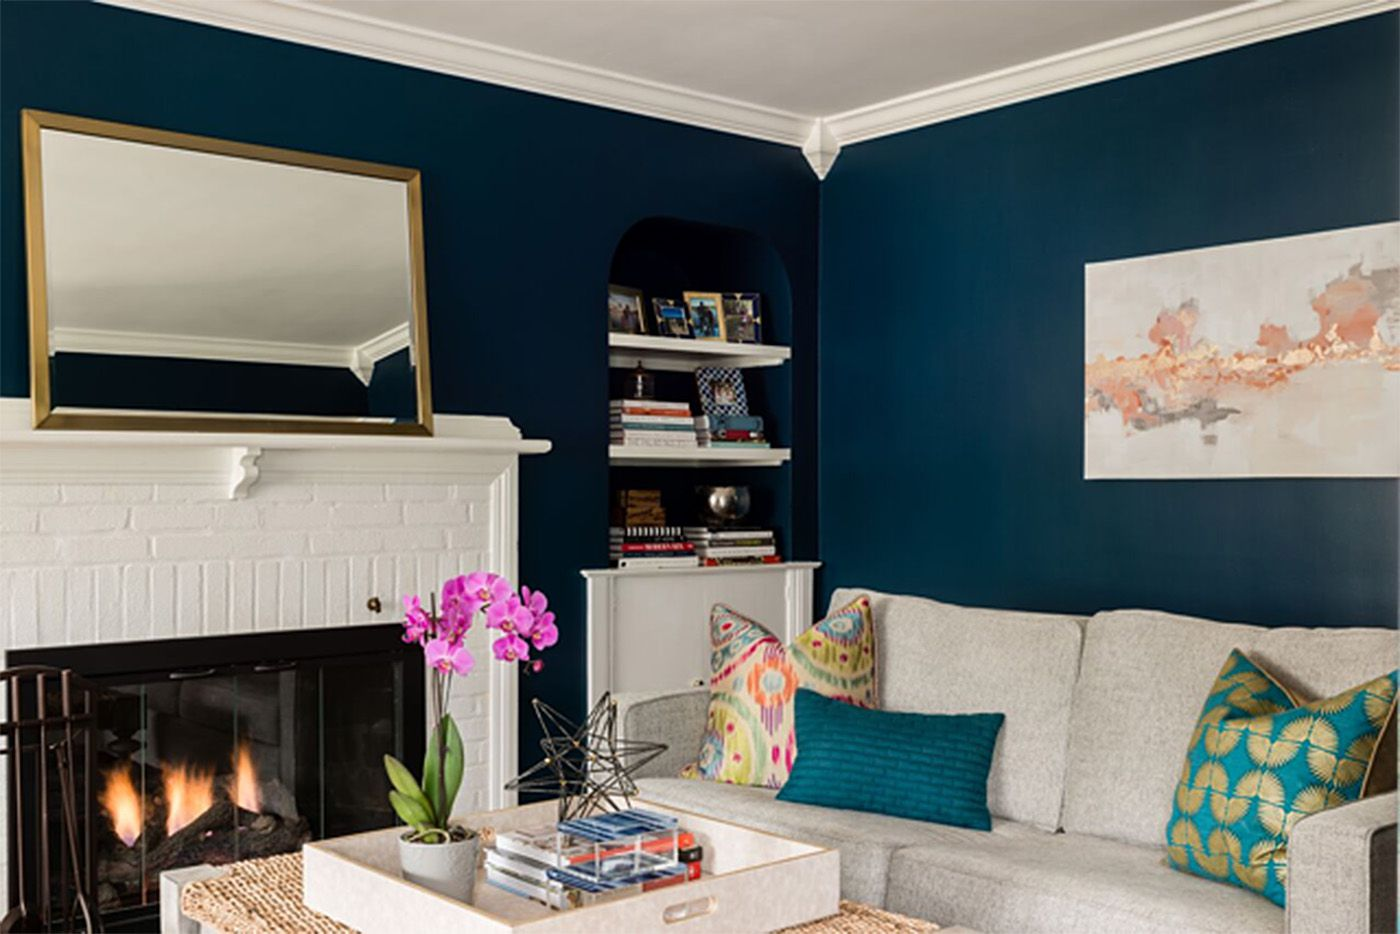 How To Pull Off Navy Blue Walls The Boston Globe